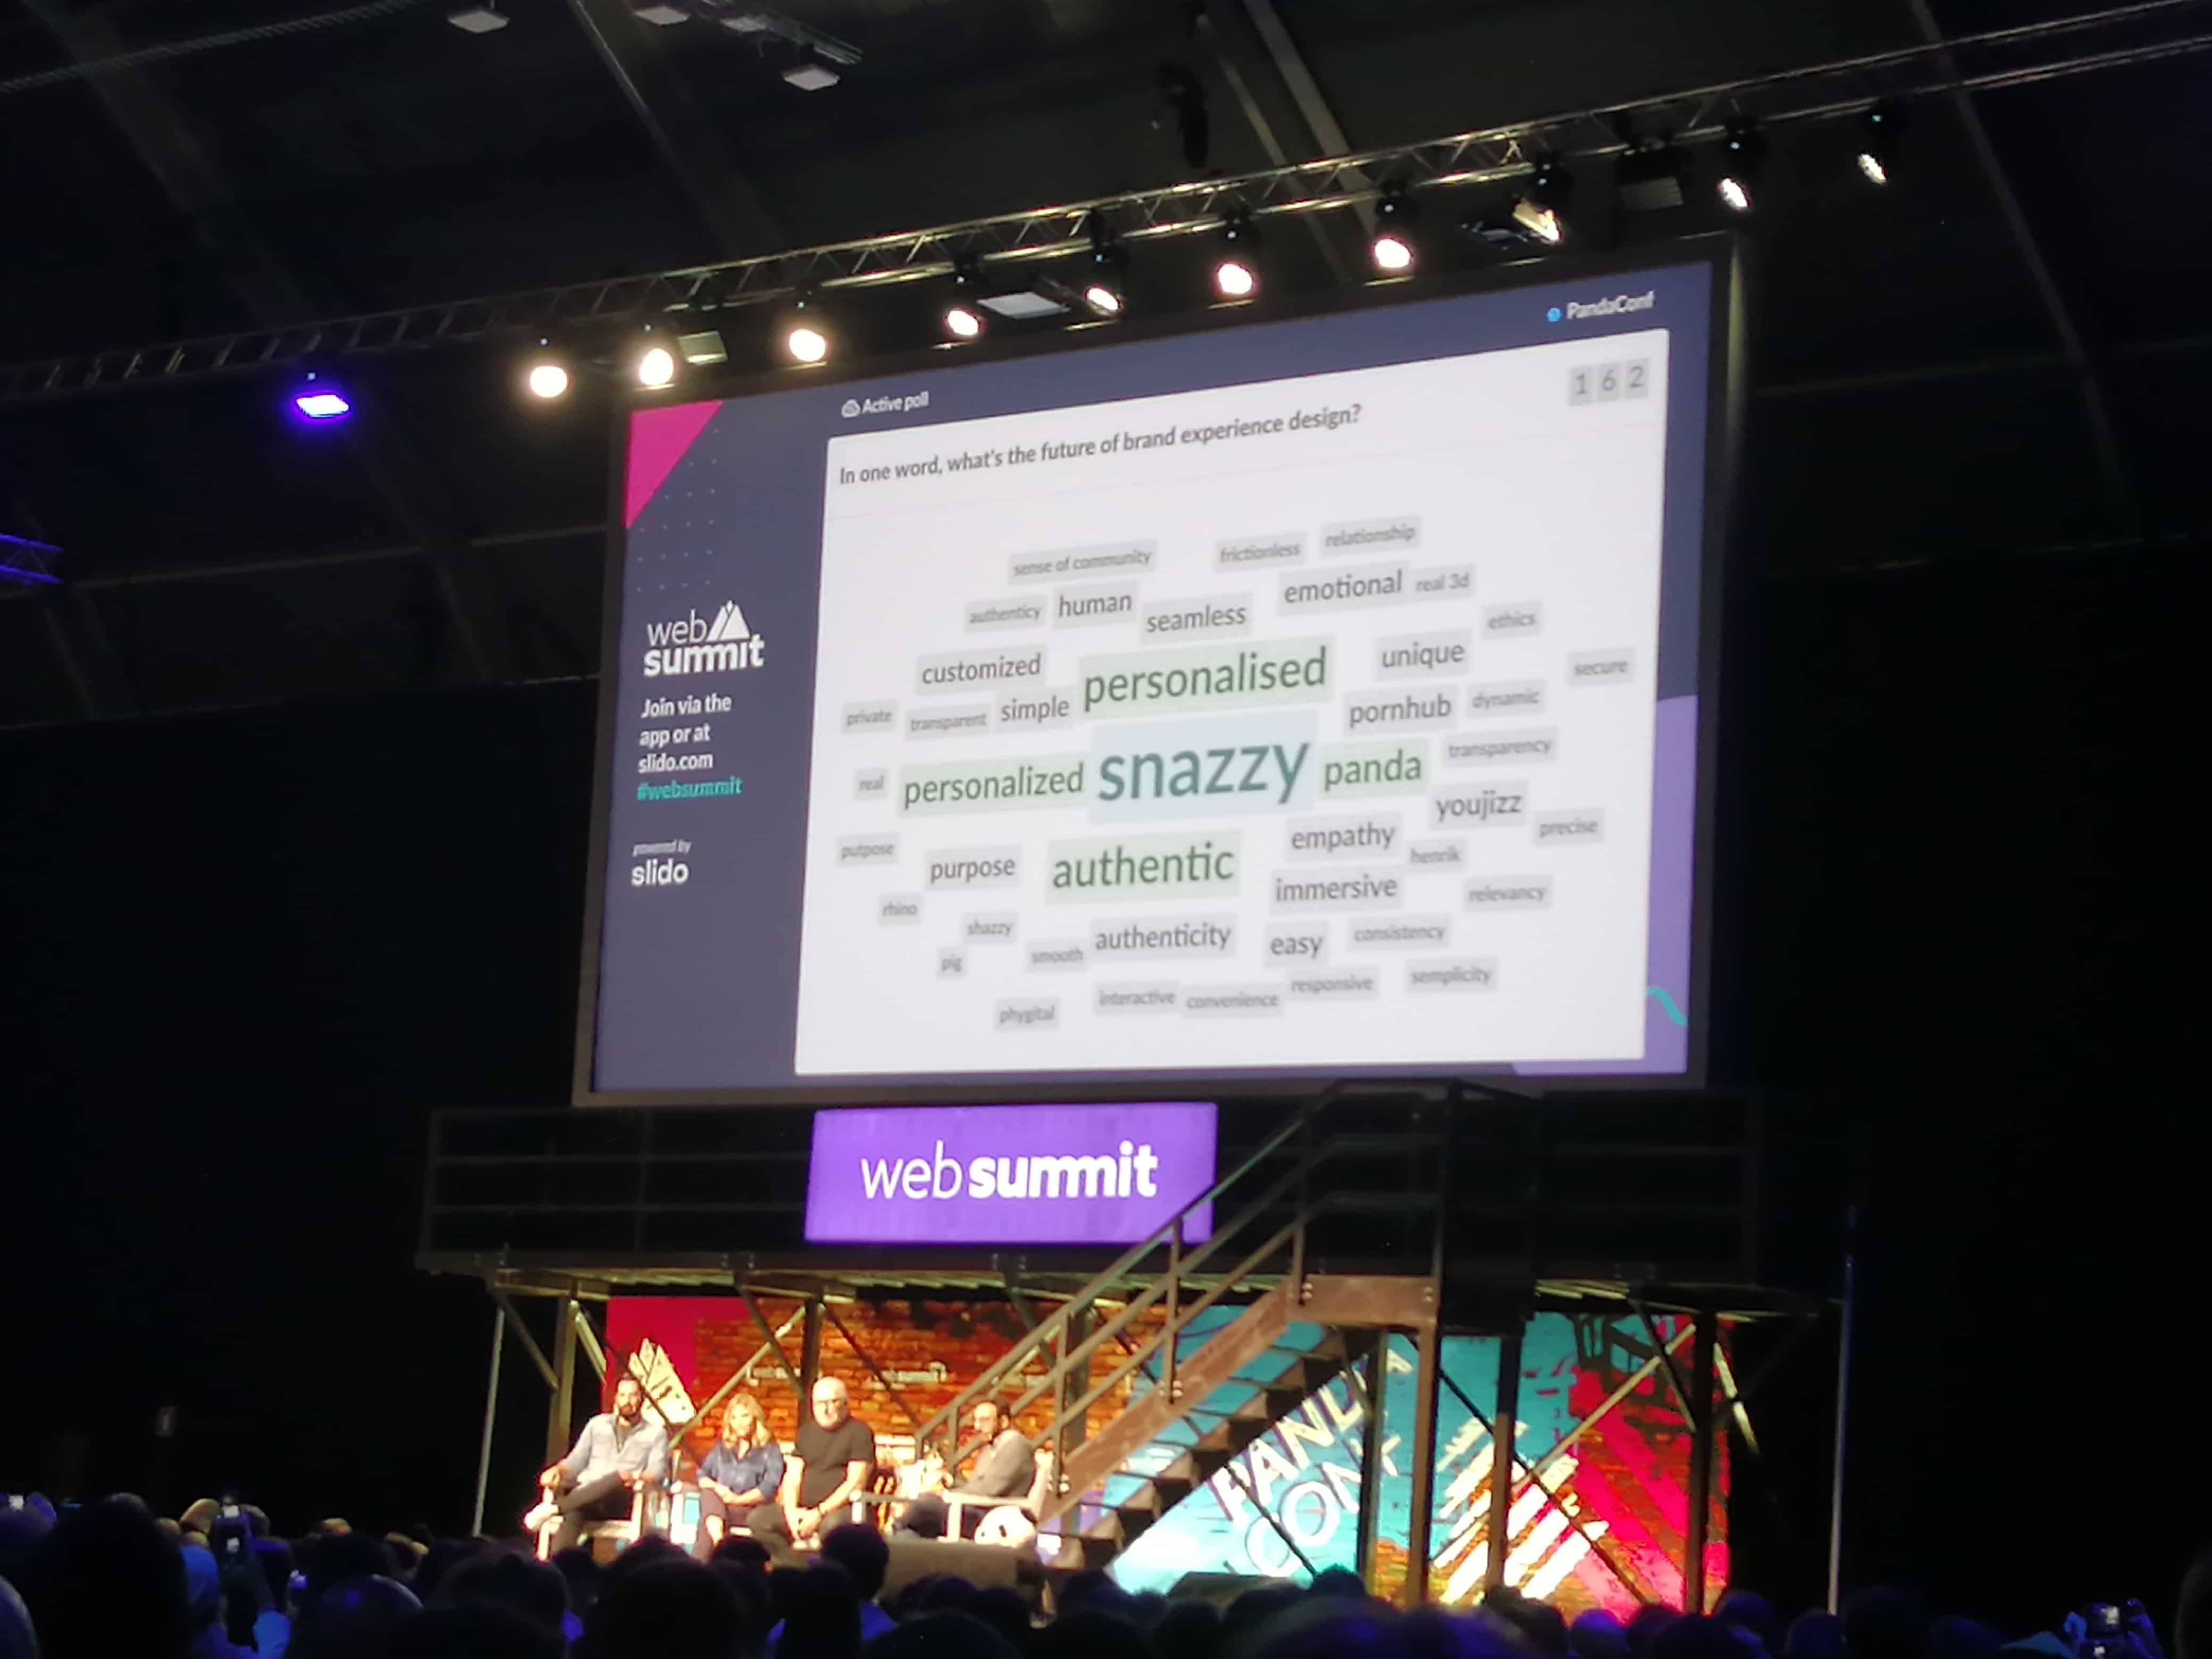 What's the future of brand experience design? - Web Summit 2019